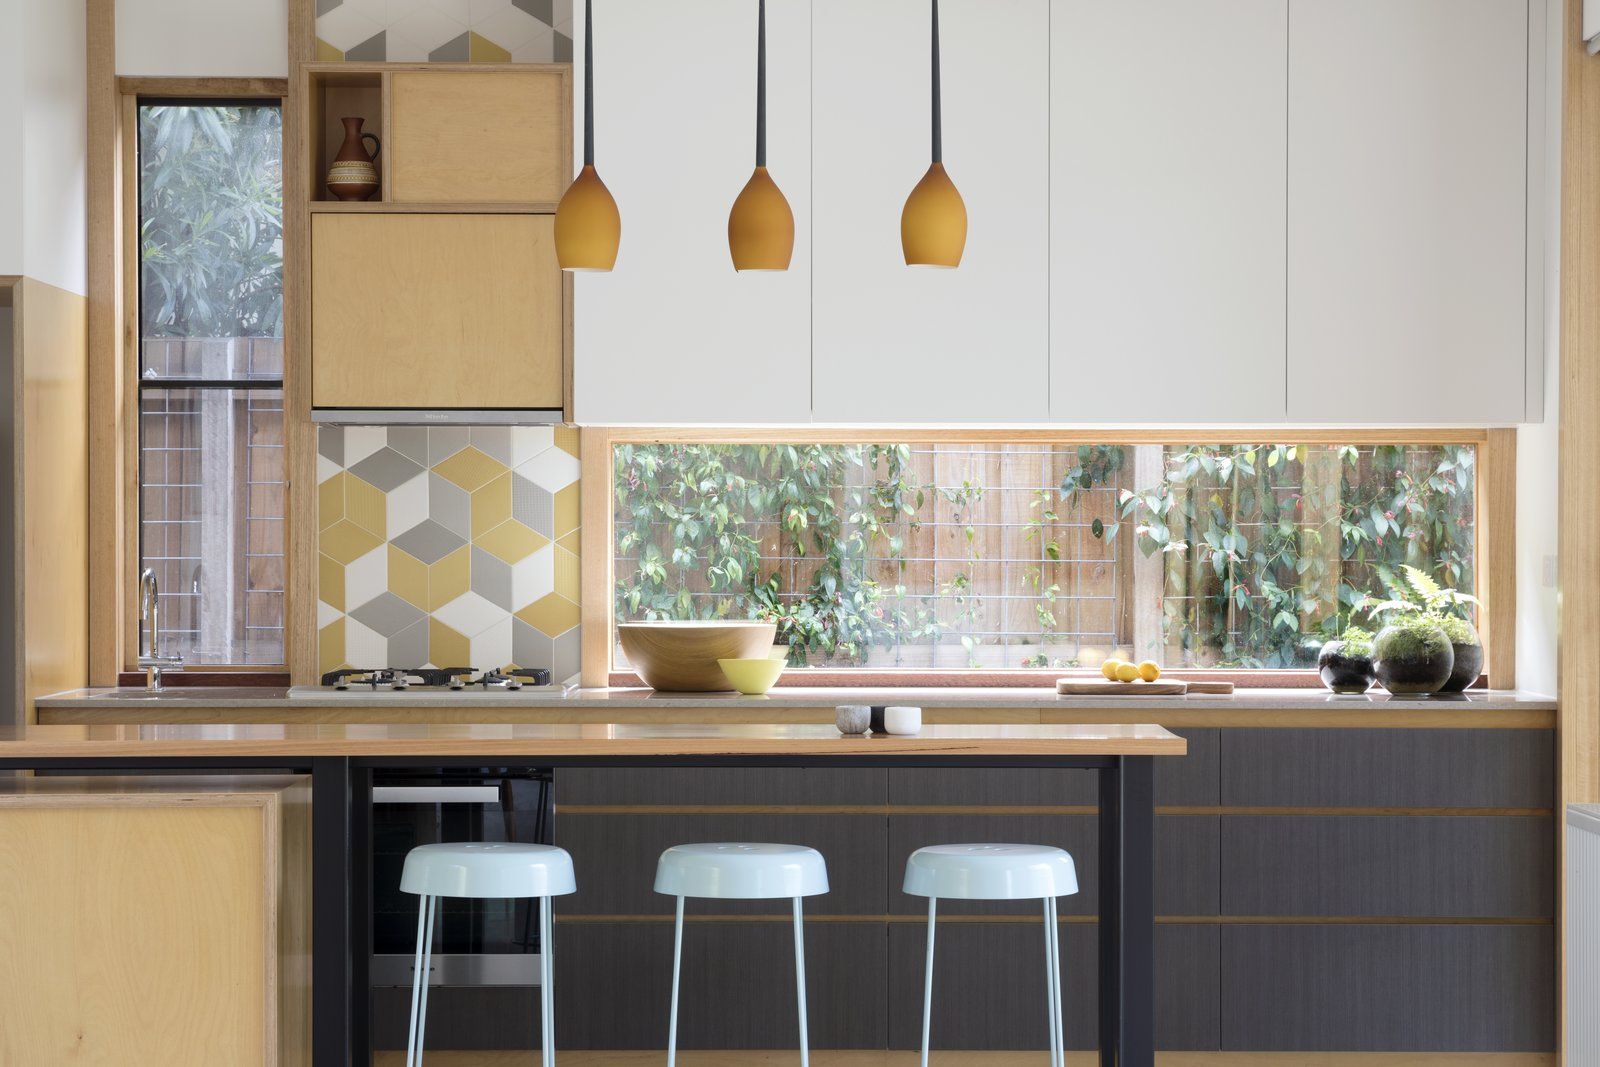 Kitchen, Range, Drop In Sink, White Cabinet, Pendant Lighting, and Ceramic Tile Backsplashe Flexi  Photo 6 of 10 in A Family Home in Australia Features a Playful Version of the Classic Pitched Roof